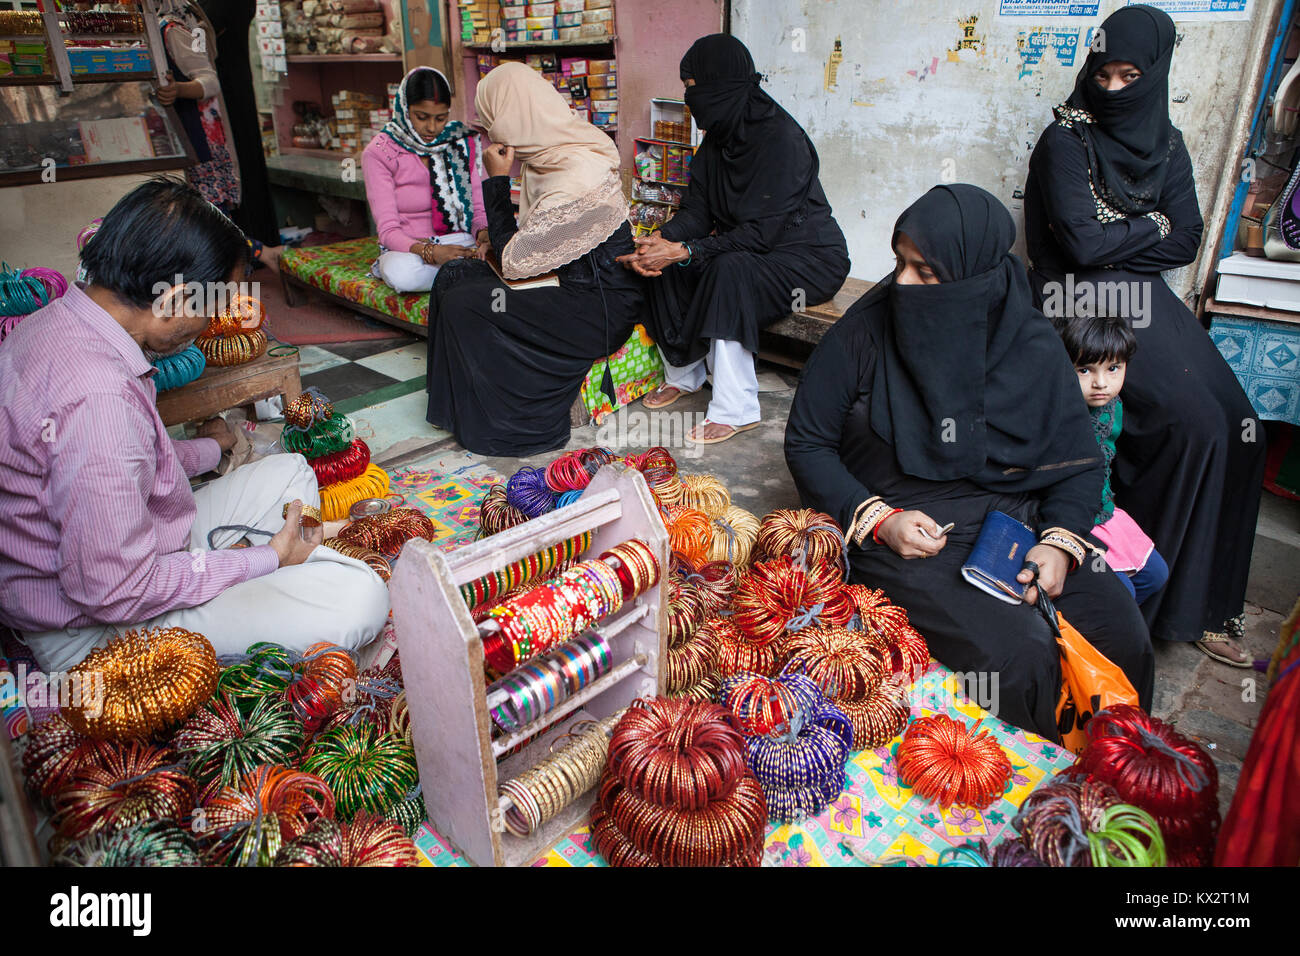 Muslim women buying bangles in the bazaar at Faizabad - Stock Image